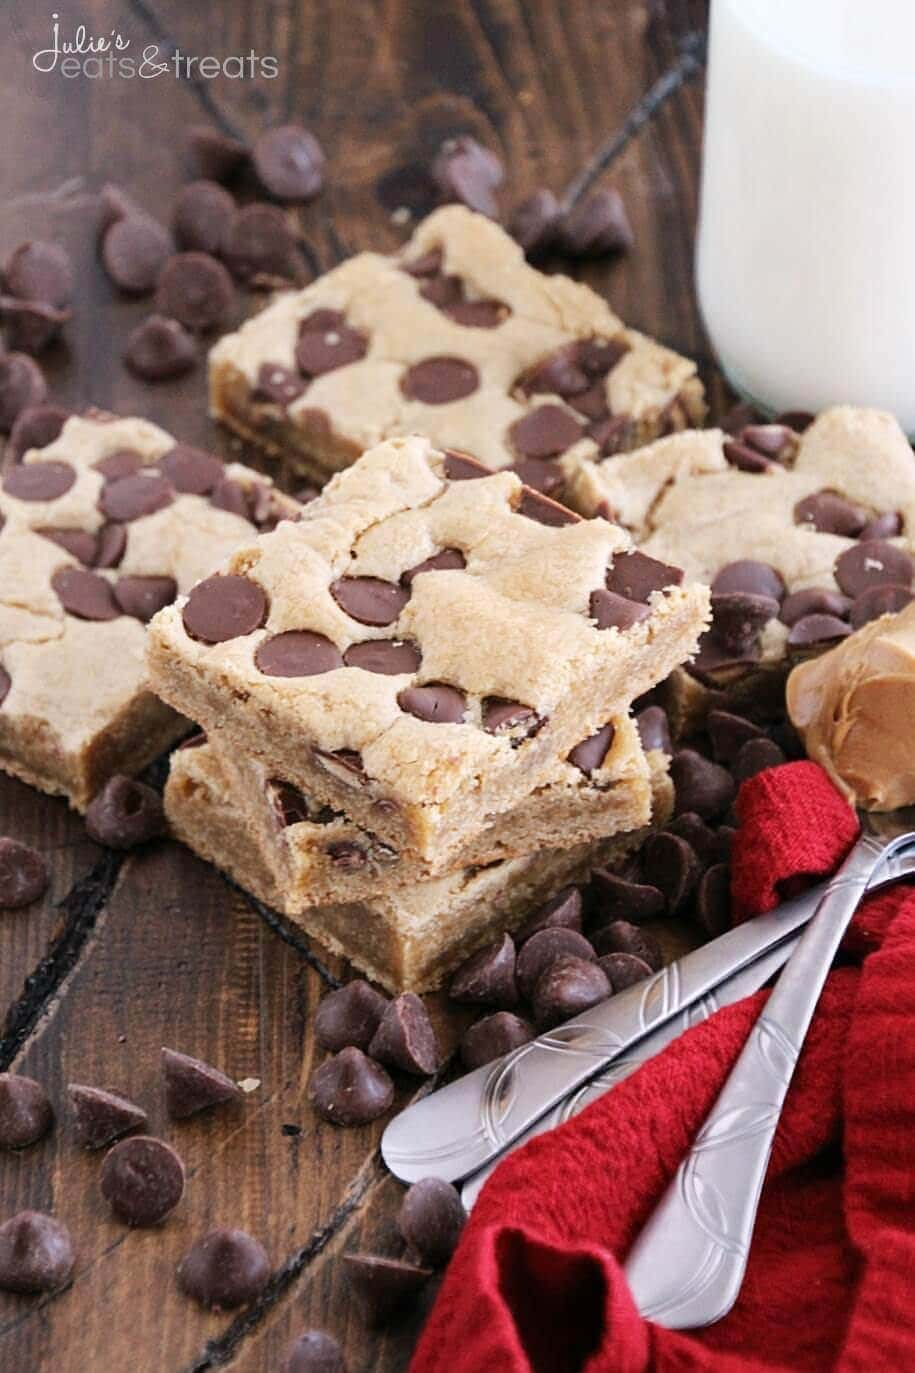 Chewy Peanut Bars Video Peanut Butter Chocolate Chip Cookie Bars ~ Soft, Chewy Peanut Butter Cookie Bars Loaded with